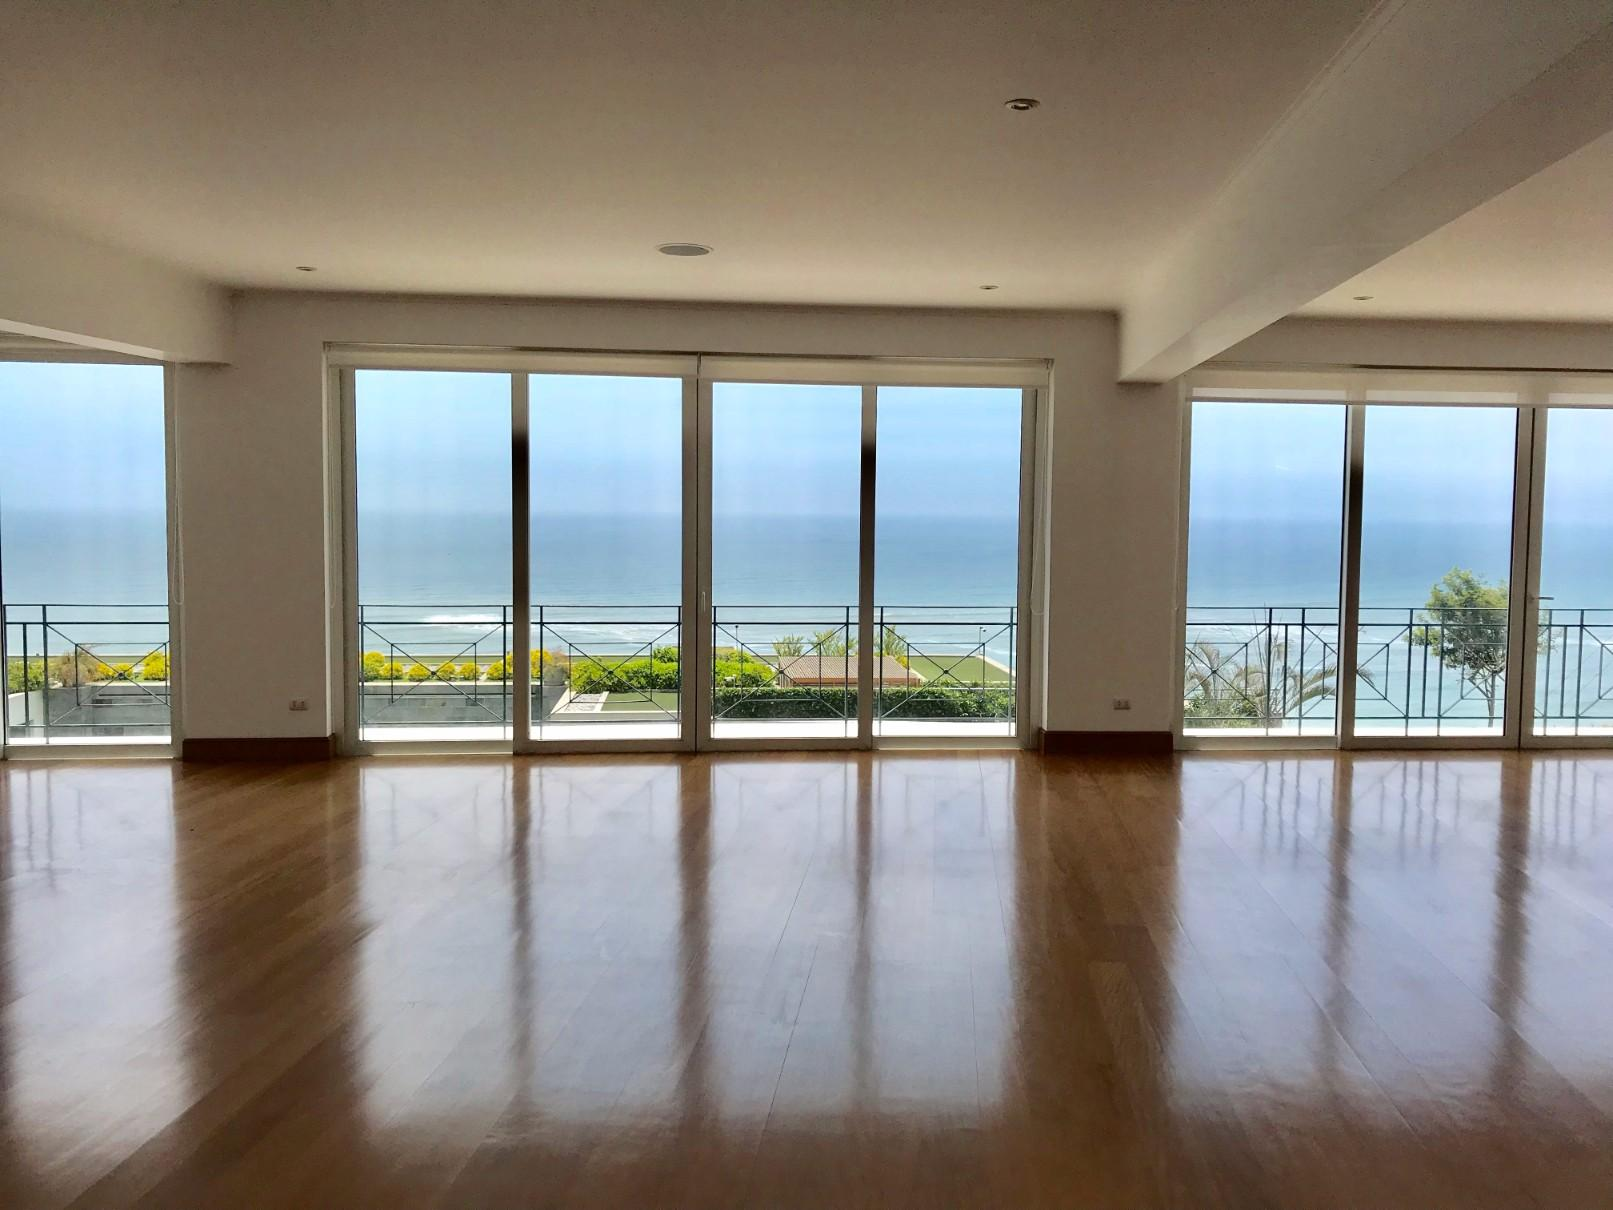 Departamento con Vista al Mar en la Zona mas Exclusiva de Barranco